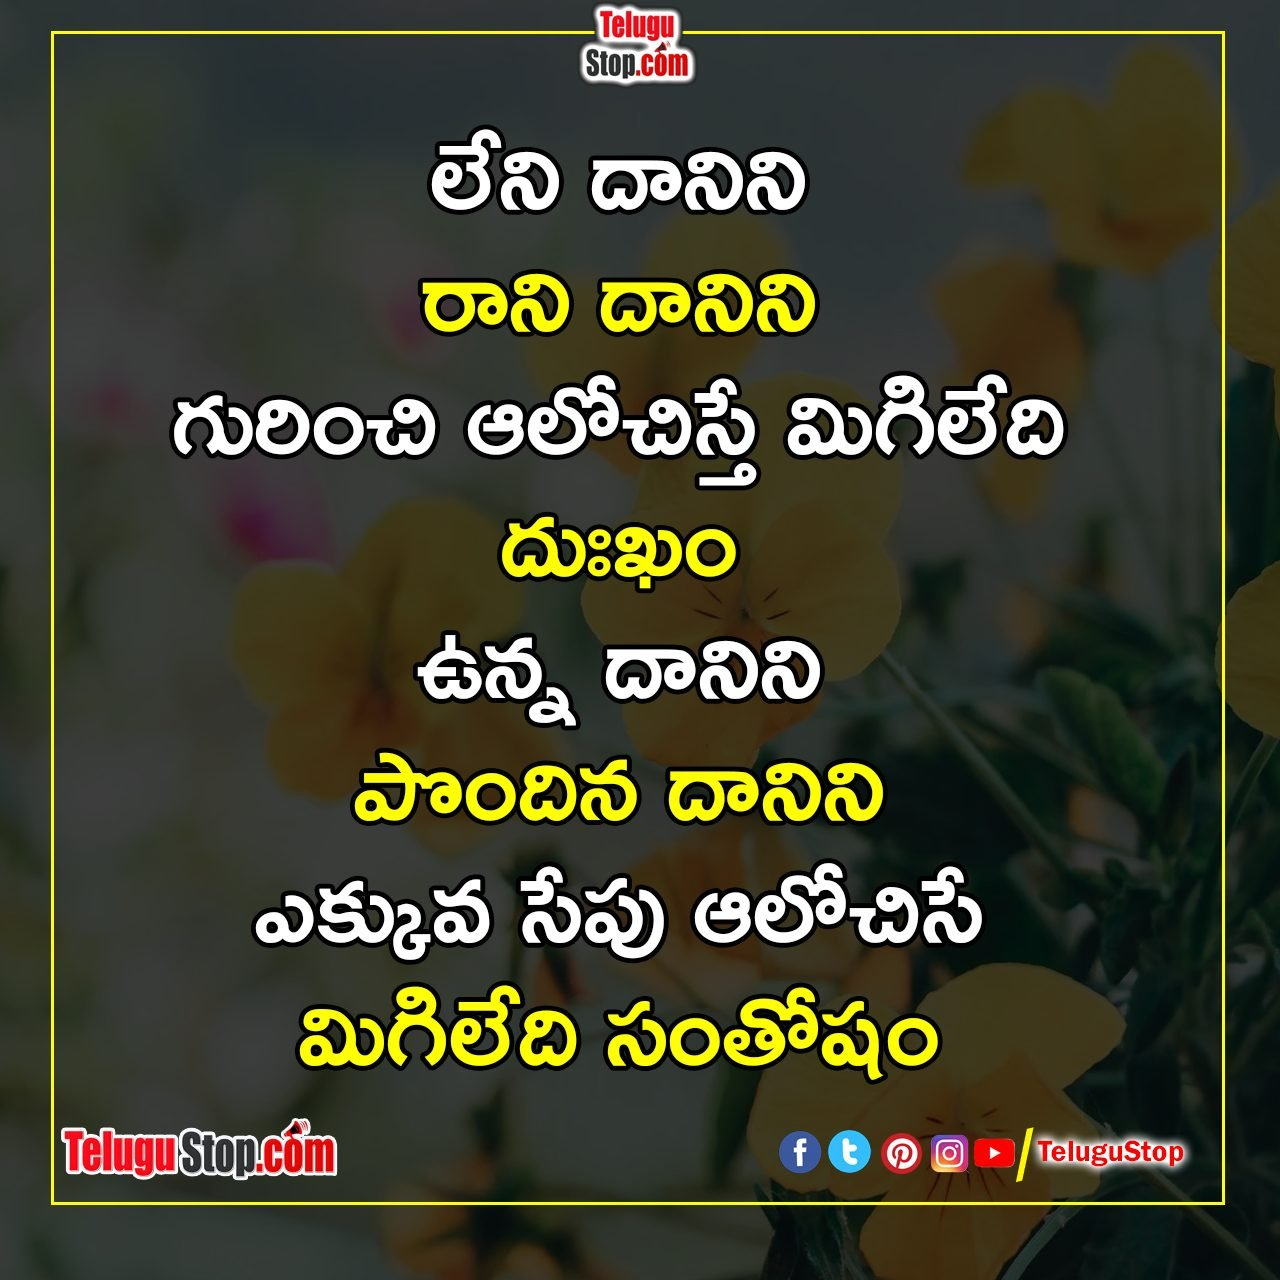 Telugu Aamma Love Inspirational Quotes, Bhagavad Gita Inspirational Quotes, There Must Be Perseverance In Life Inspirational Quotes-Telugu Daily Quotes - Inspirational/Motivational/Love/Friendship/Good Morning Quote